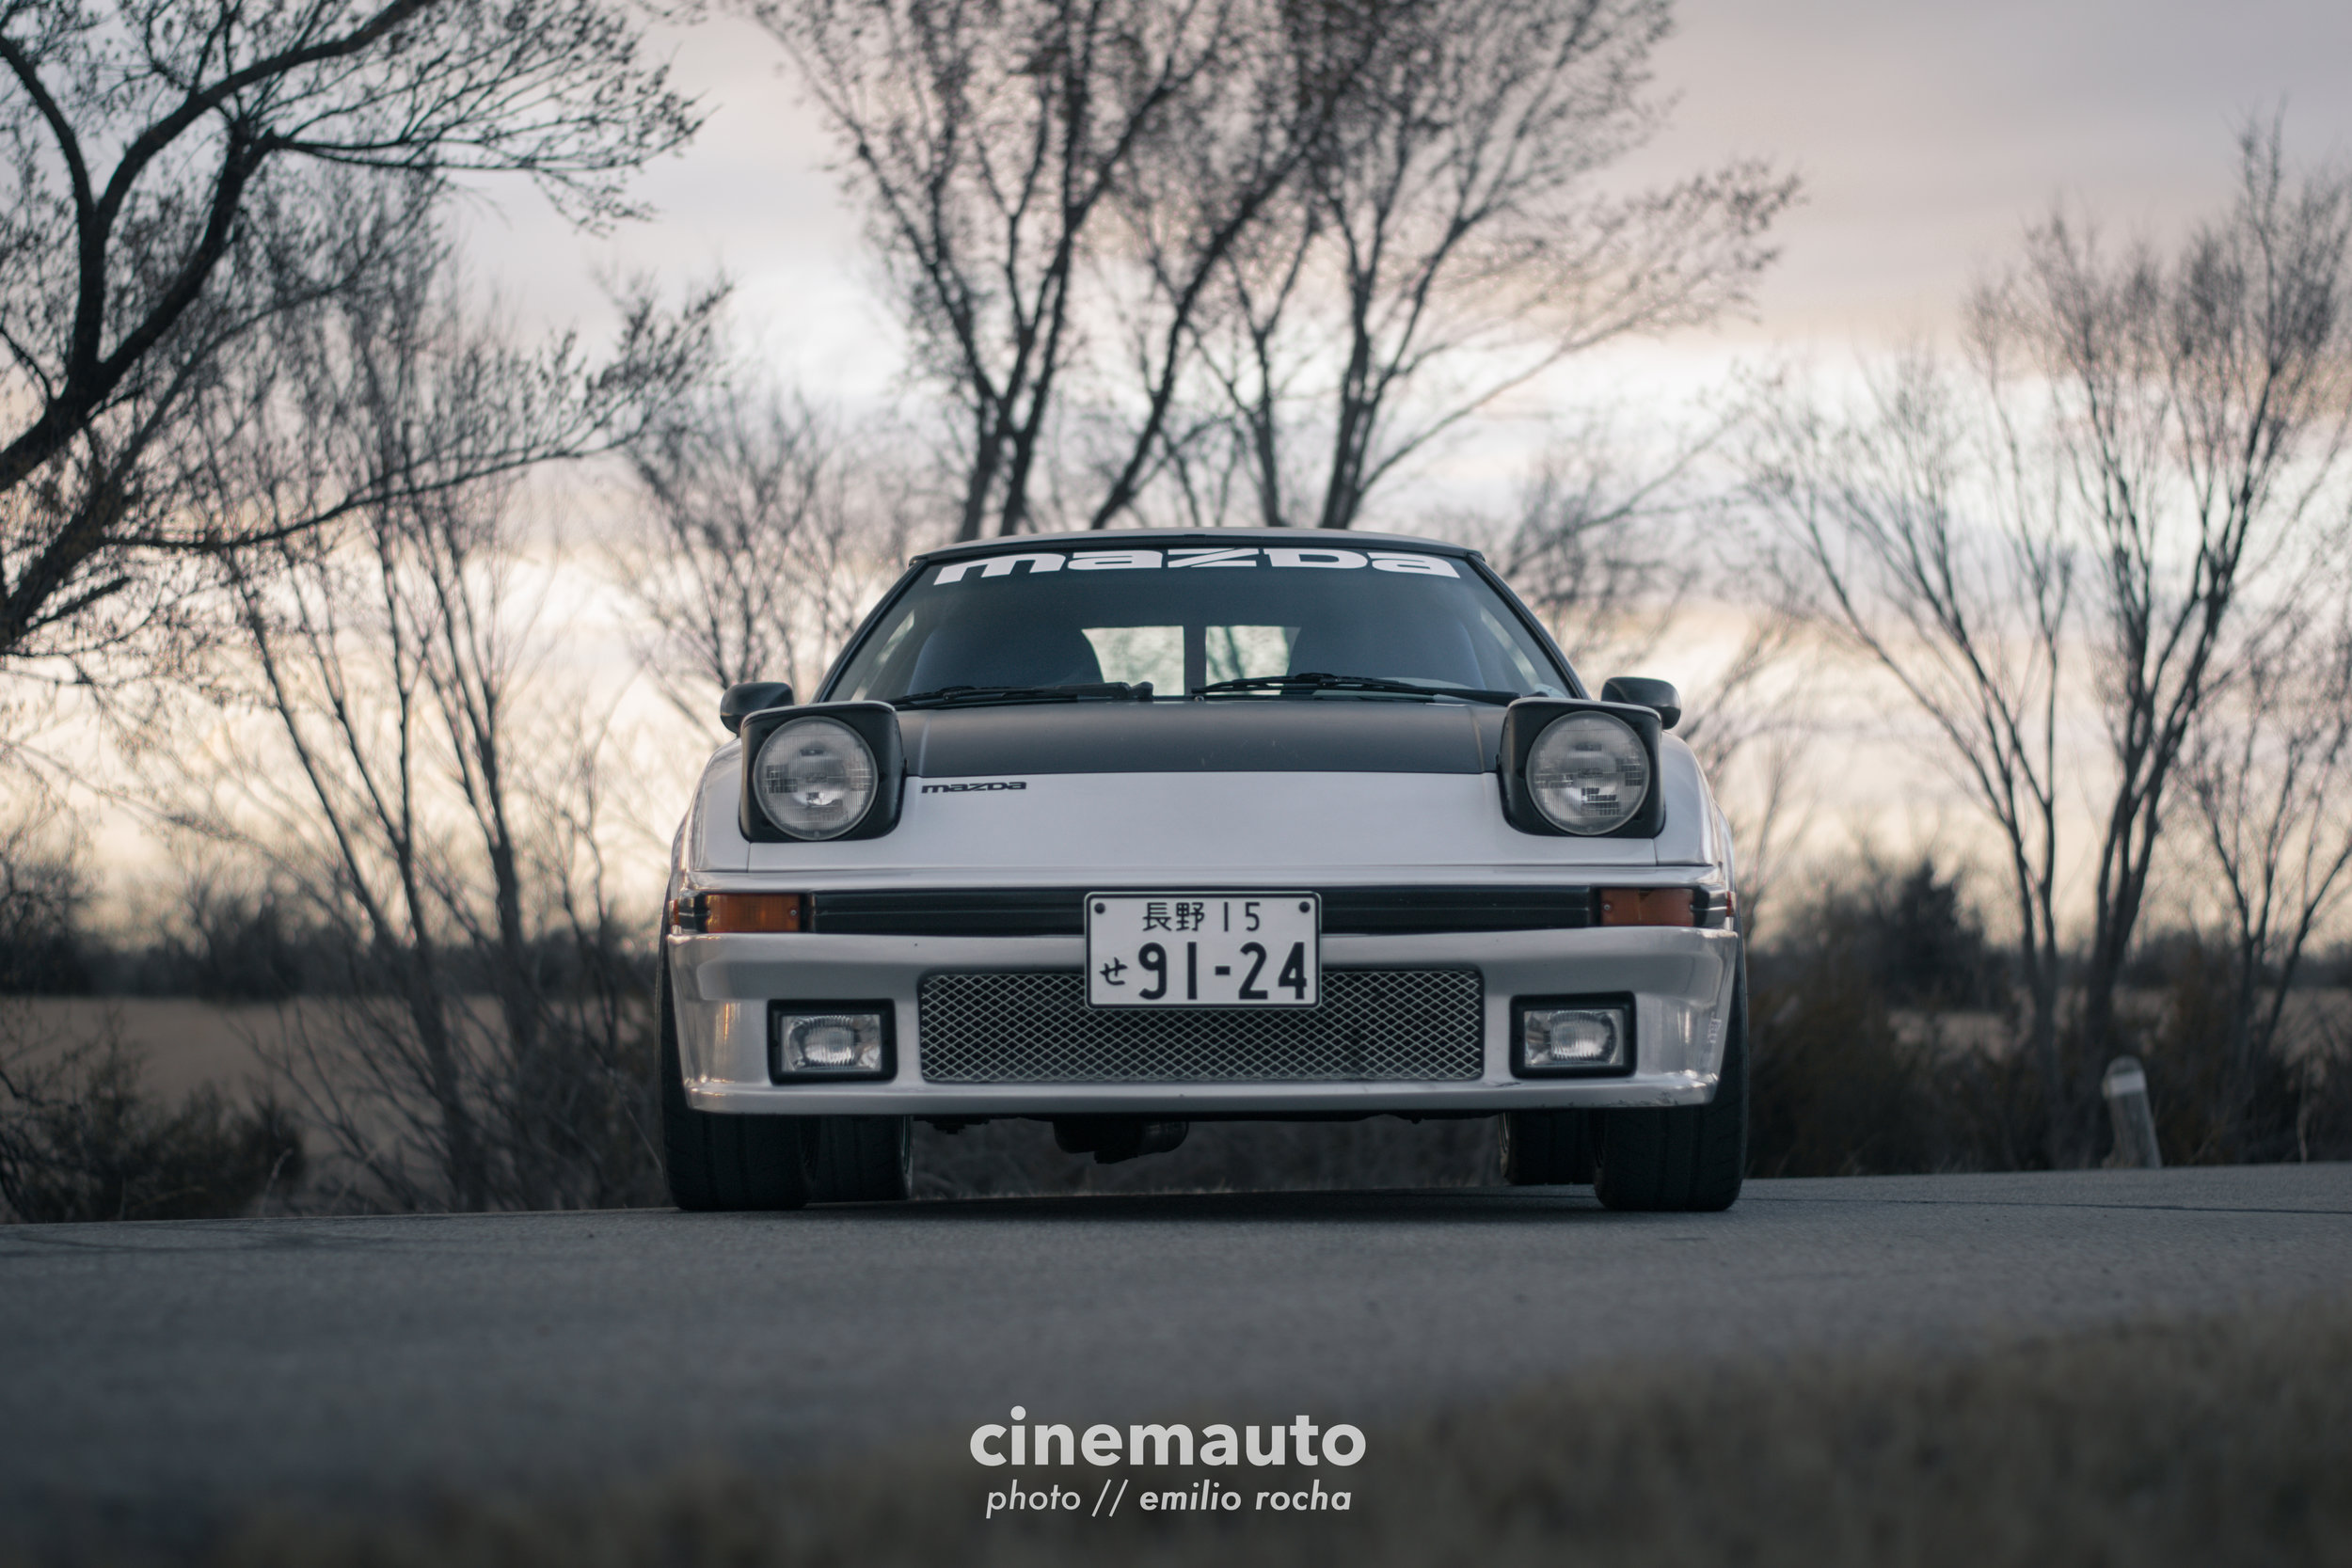 Cinemauto-RX7-15.jpg